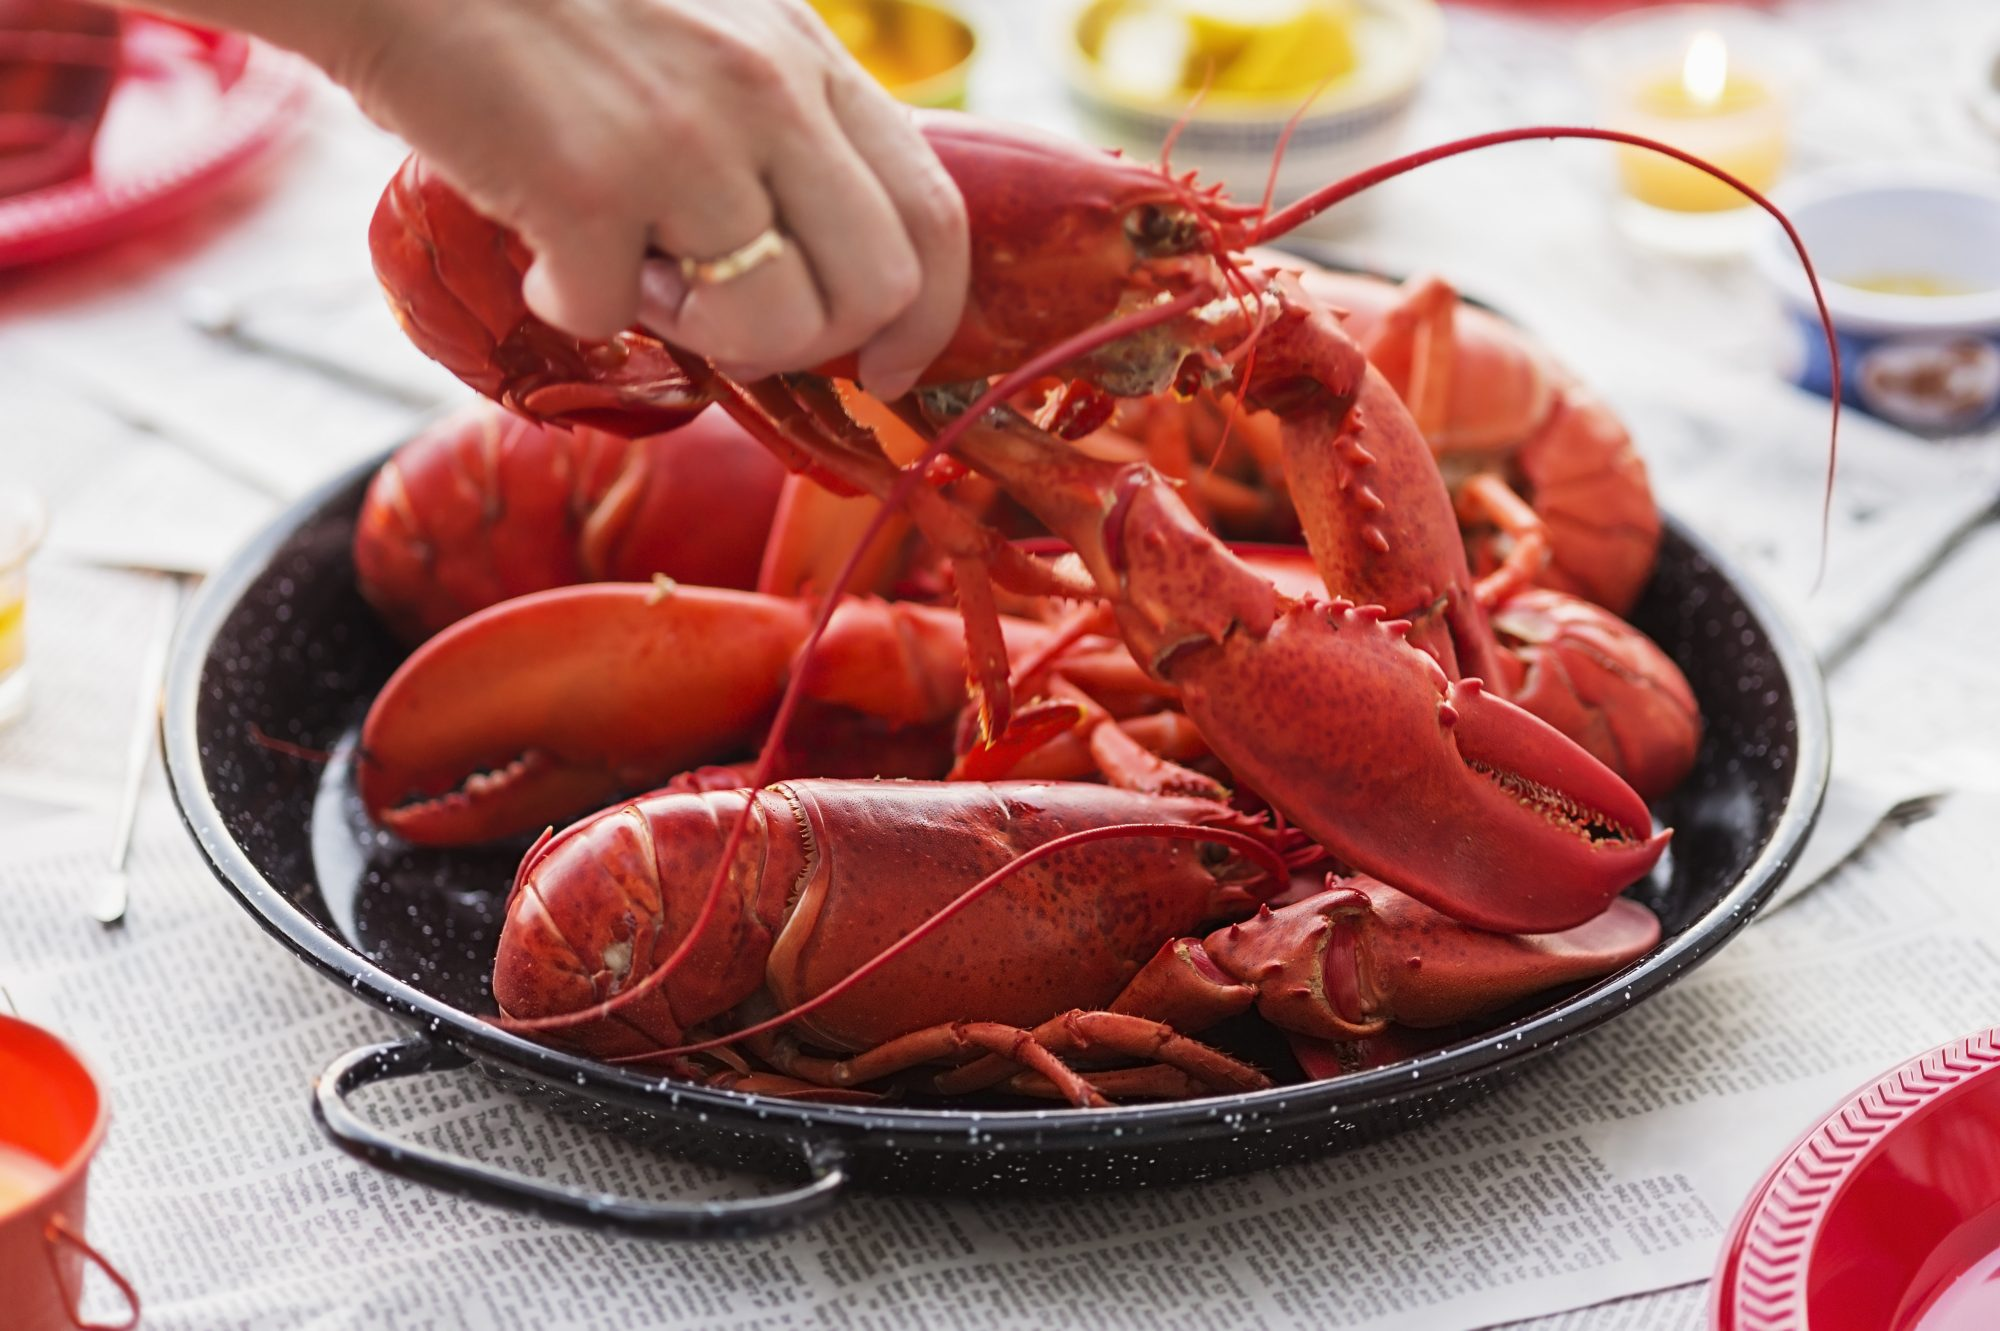 Maine Officials Investigates Restaurant That Calmed Lobsters With Marijuana